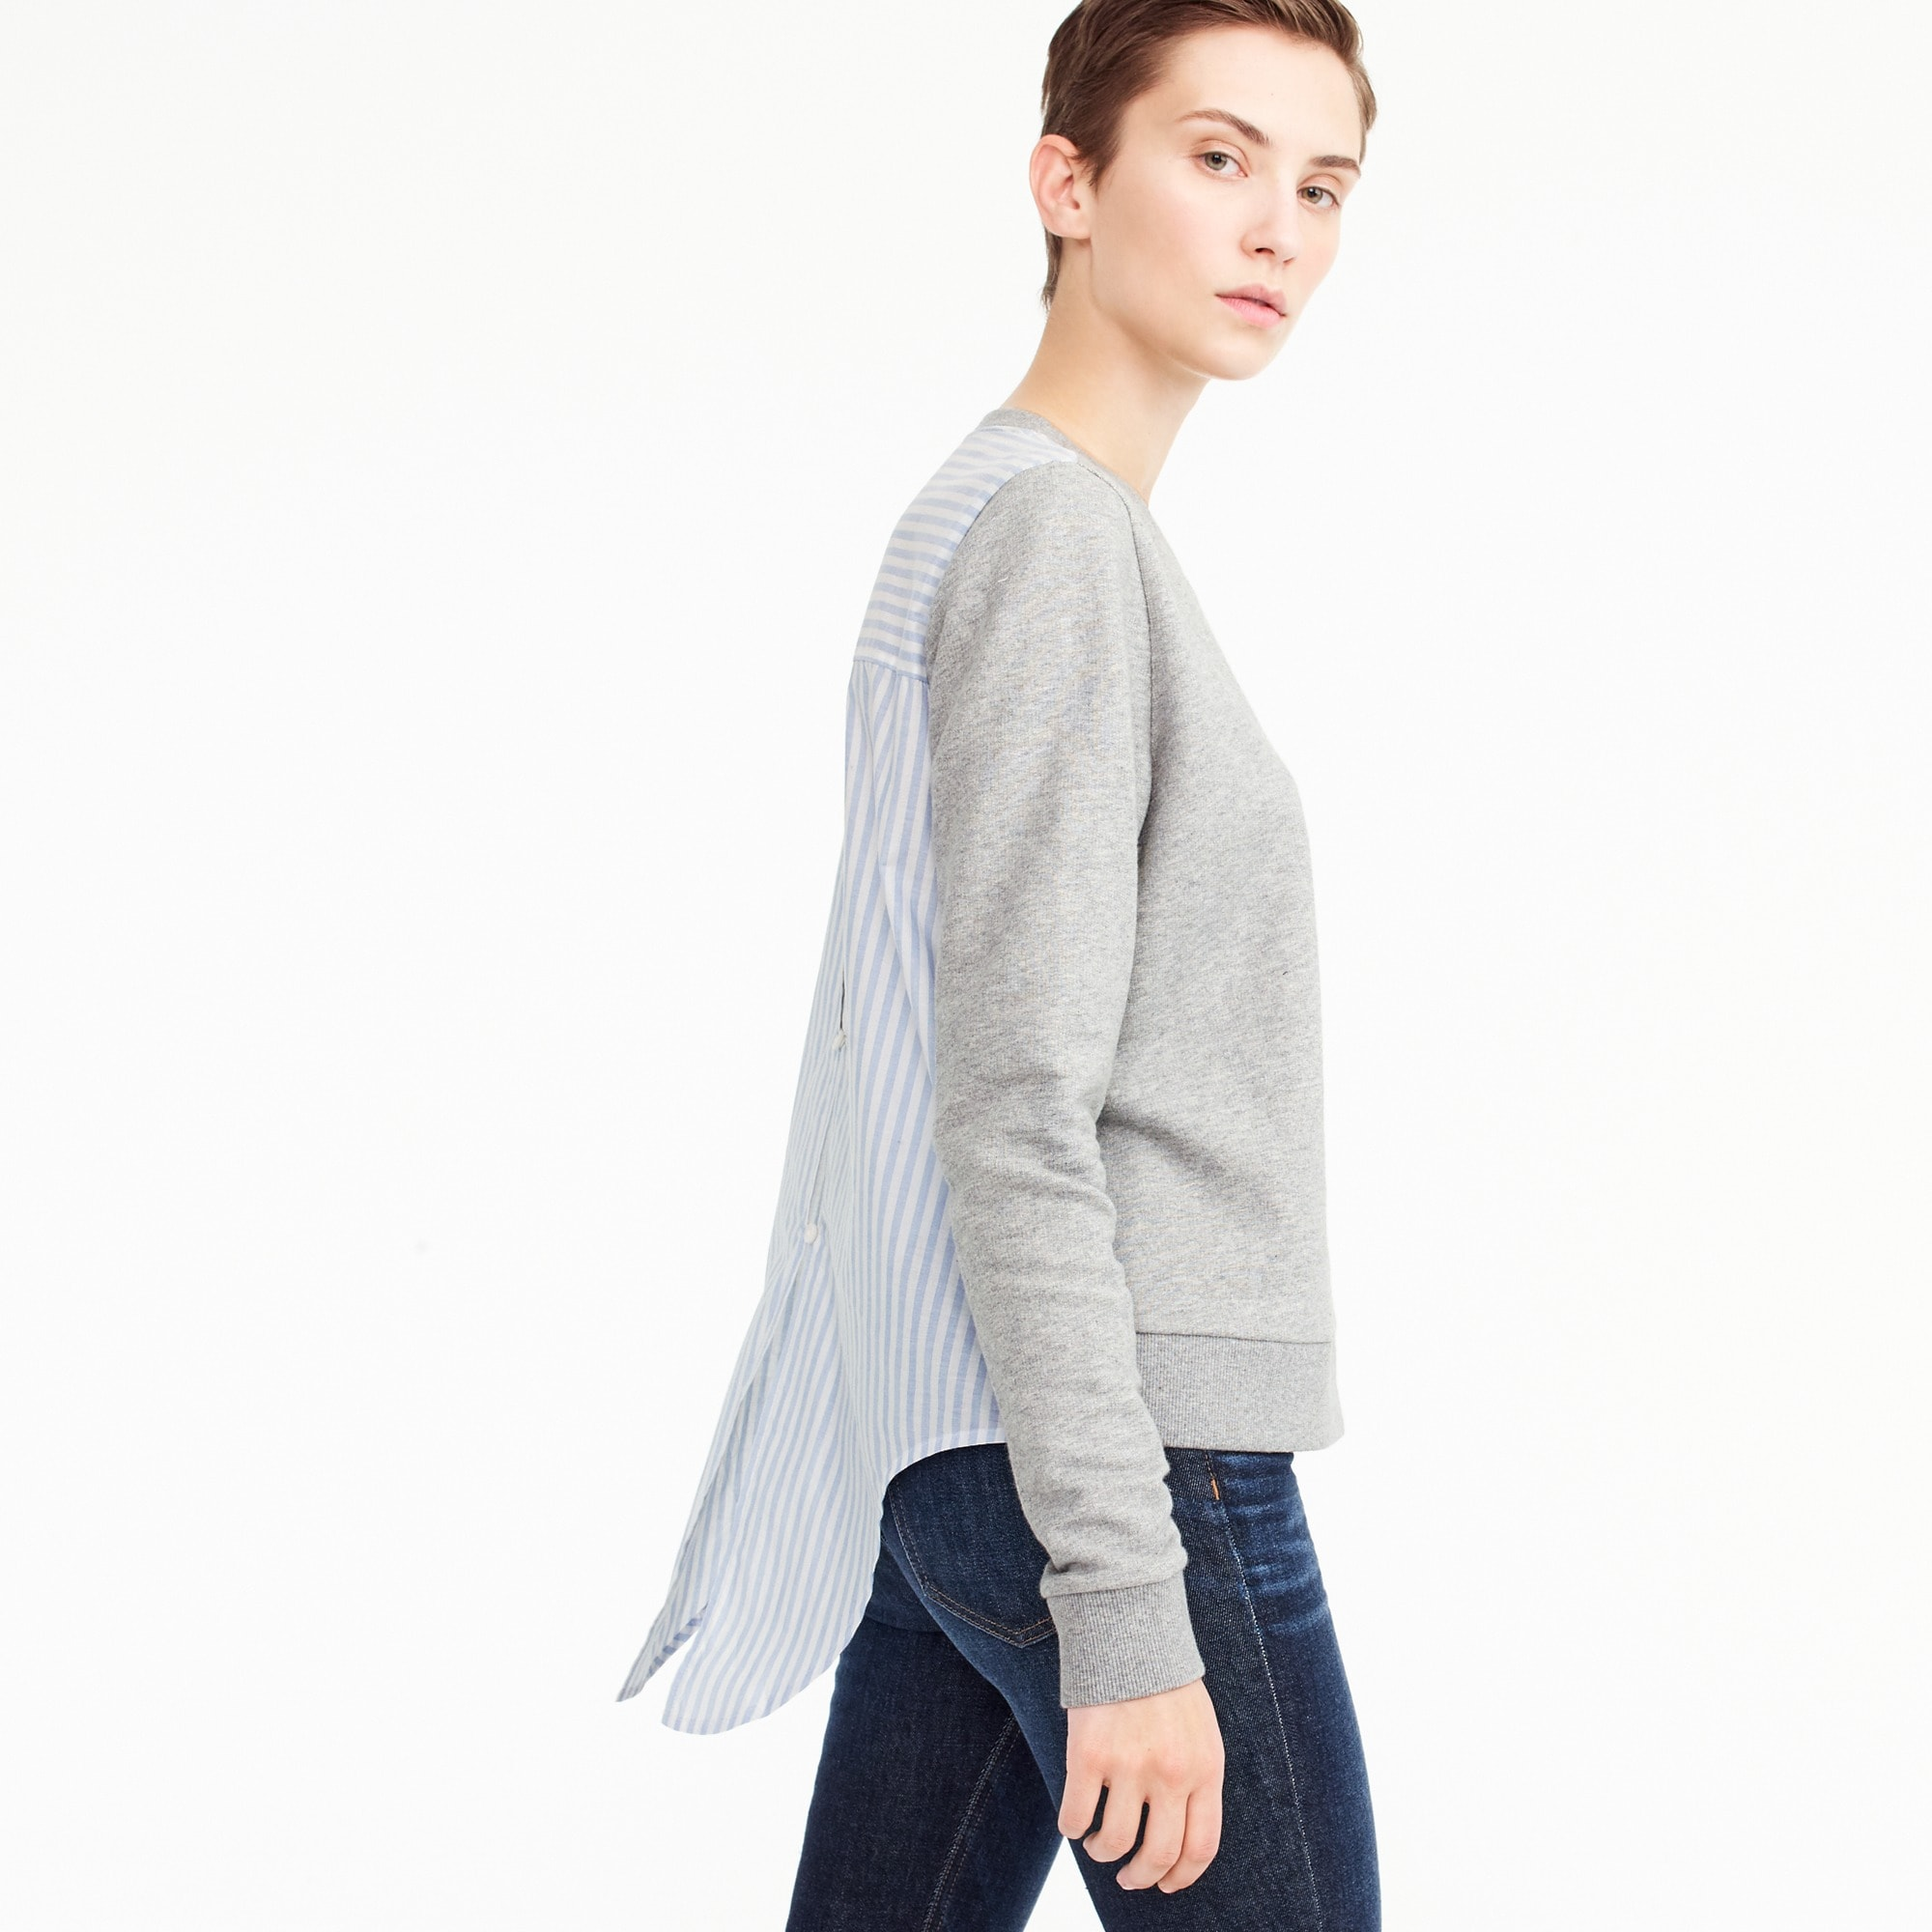 women's tie-back sweatshirt - women's knits